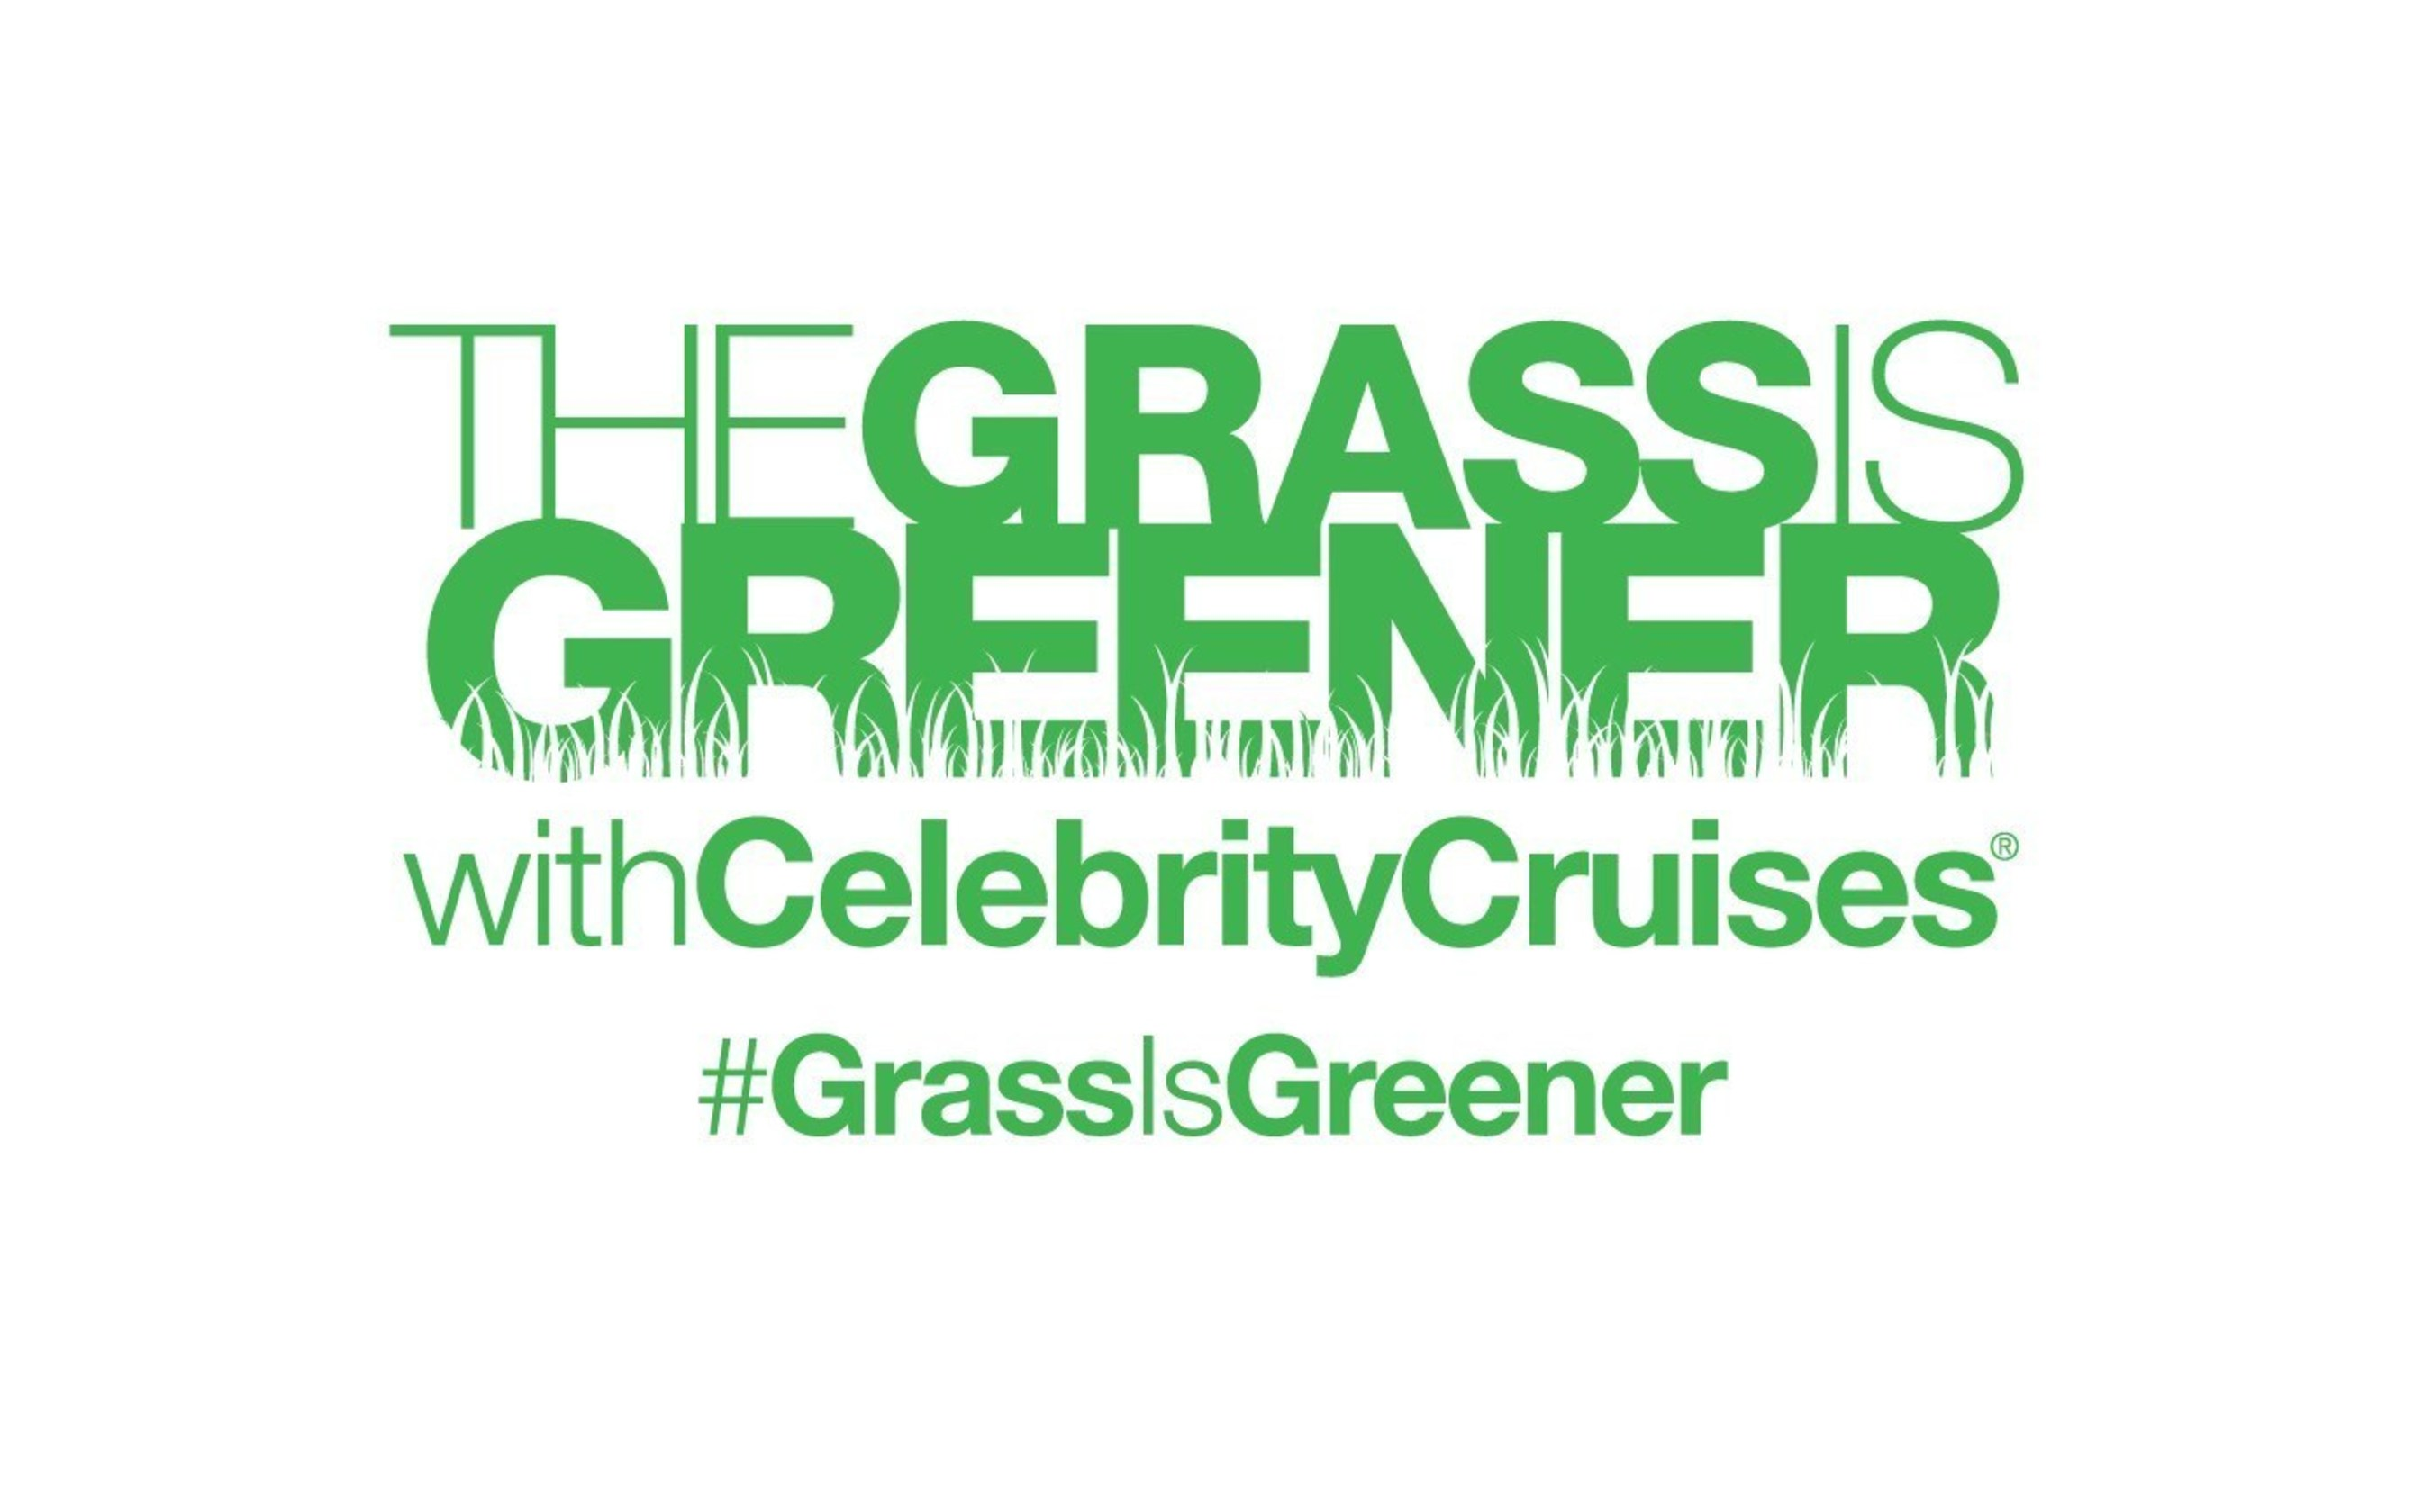 The Grass is Greener with Celebrity Cruises